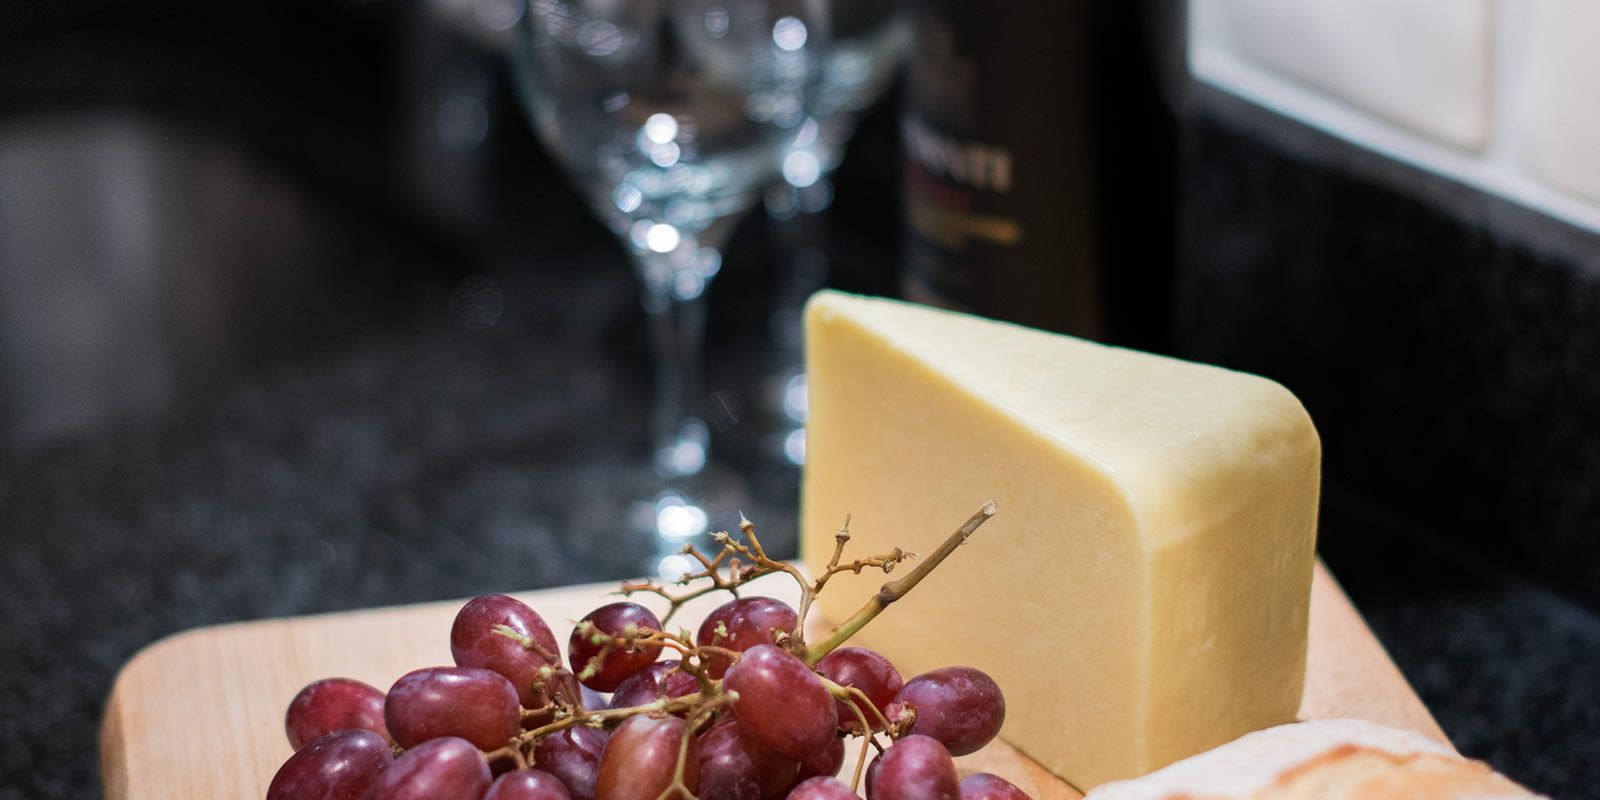 Lancashire cheese produced locally